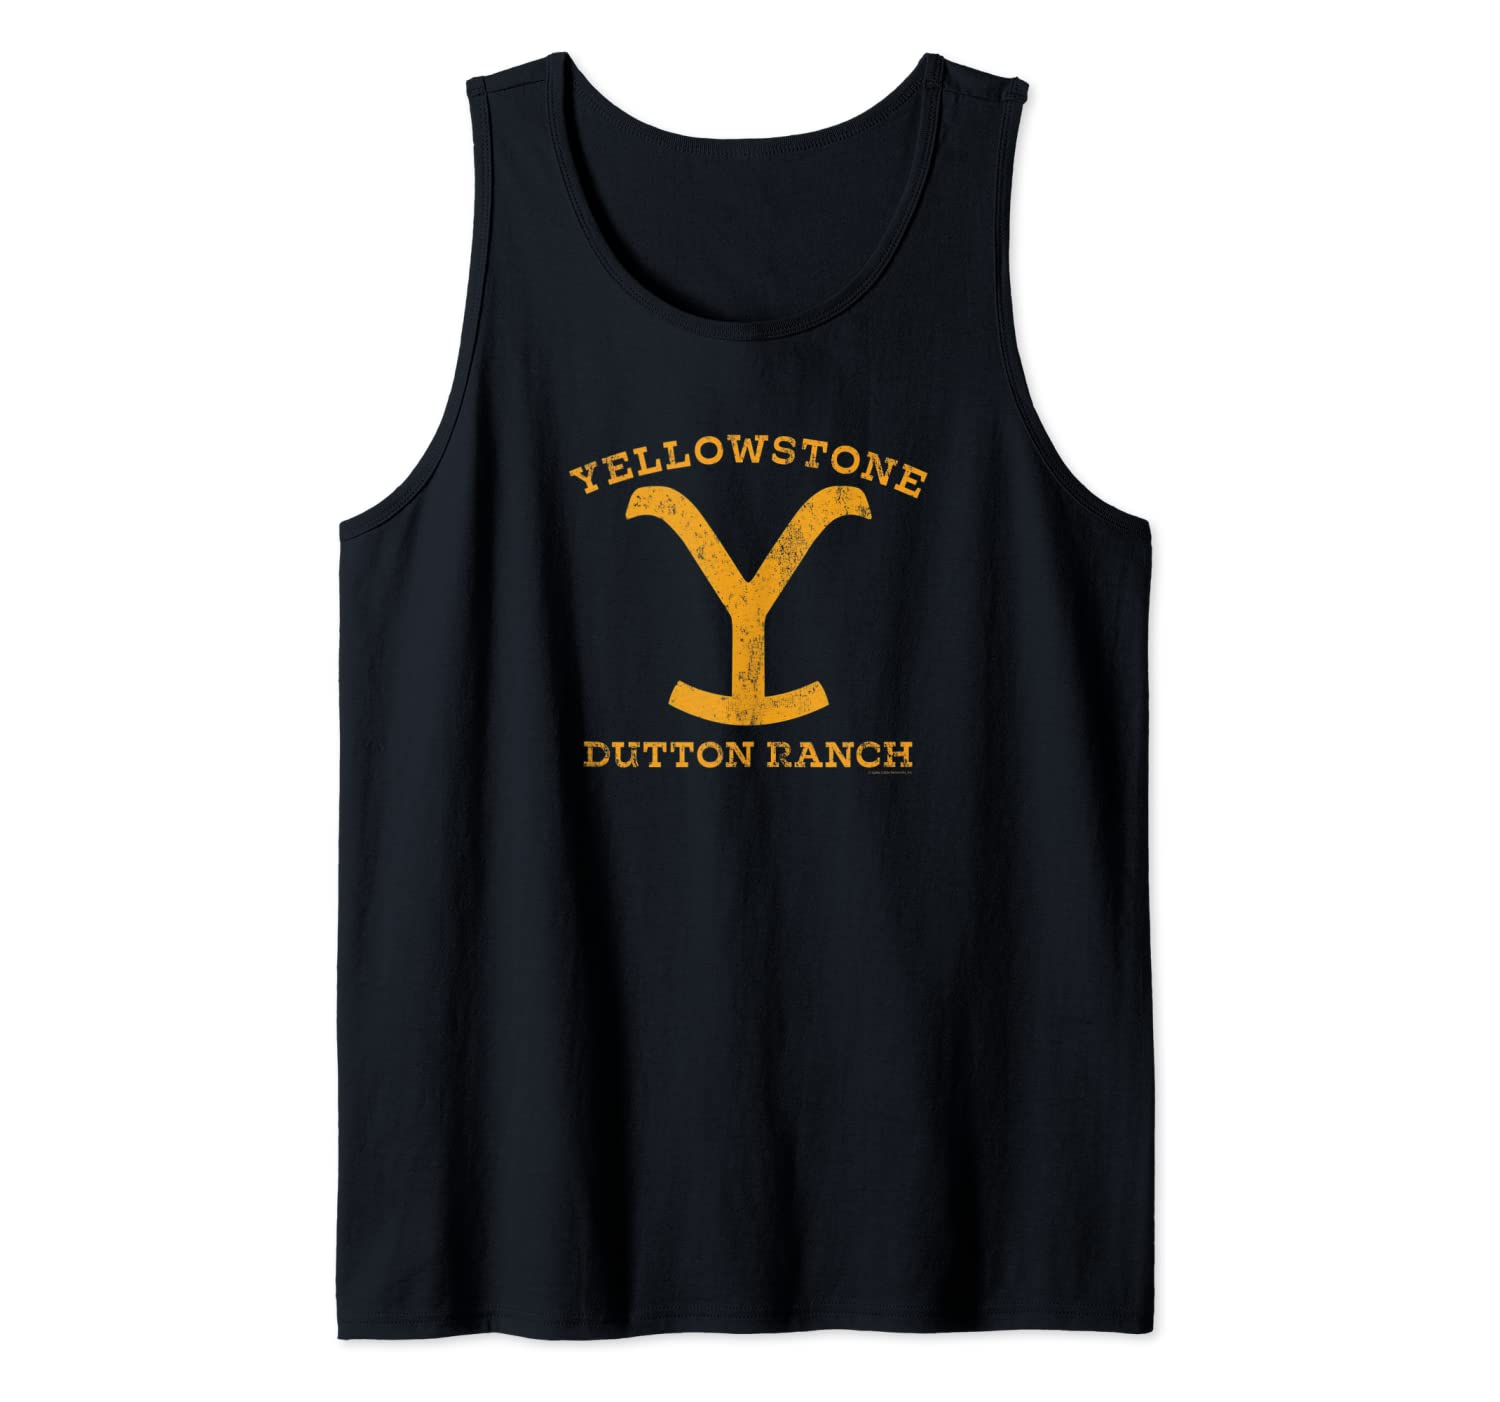 Yellowstone Tank Top